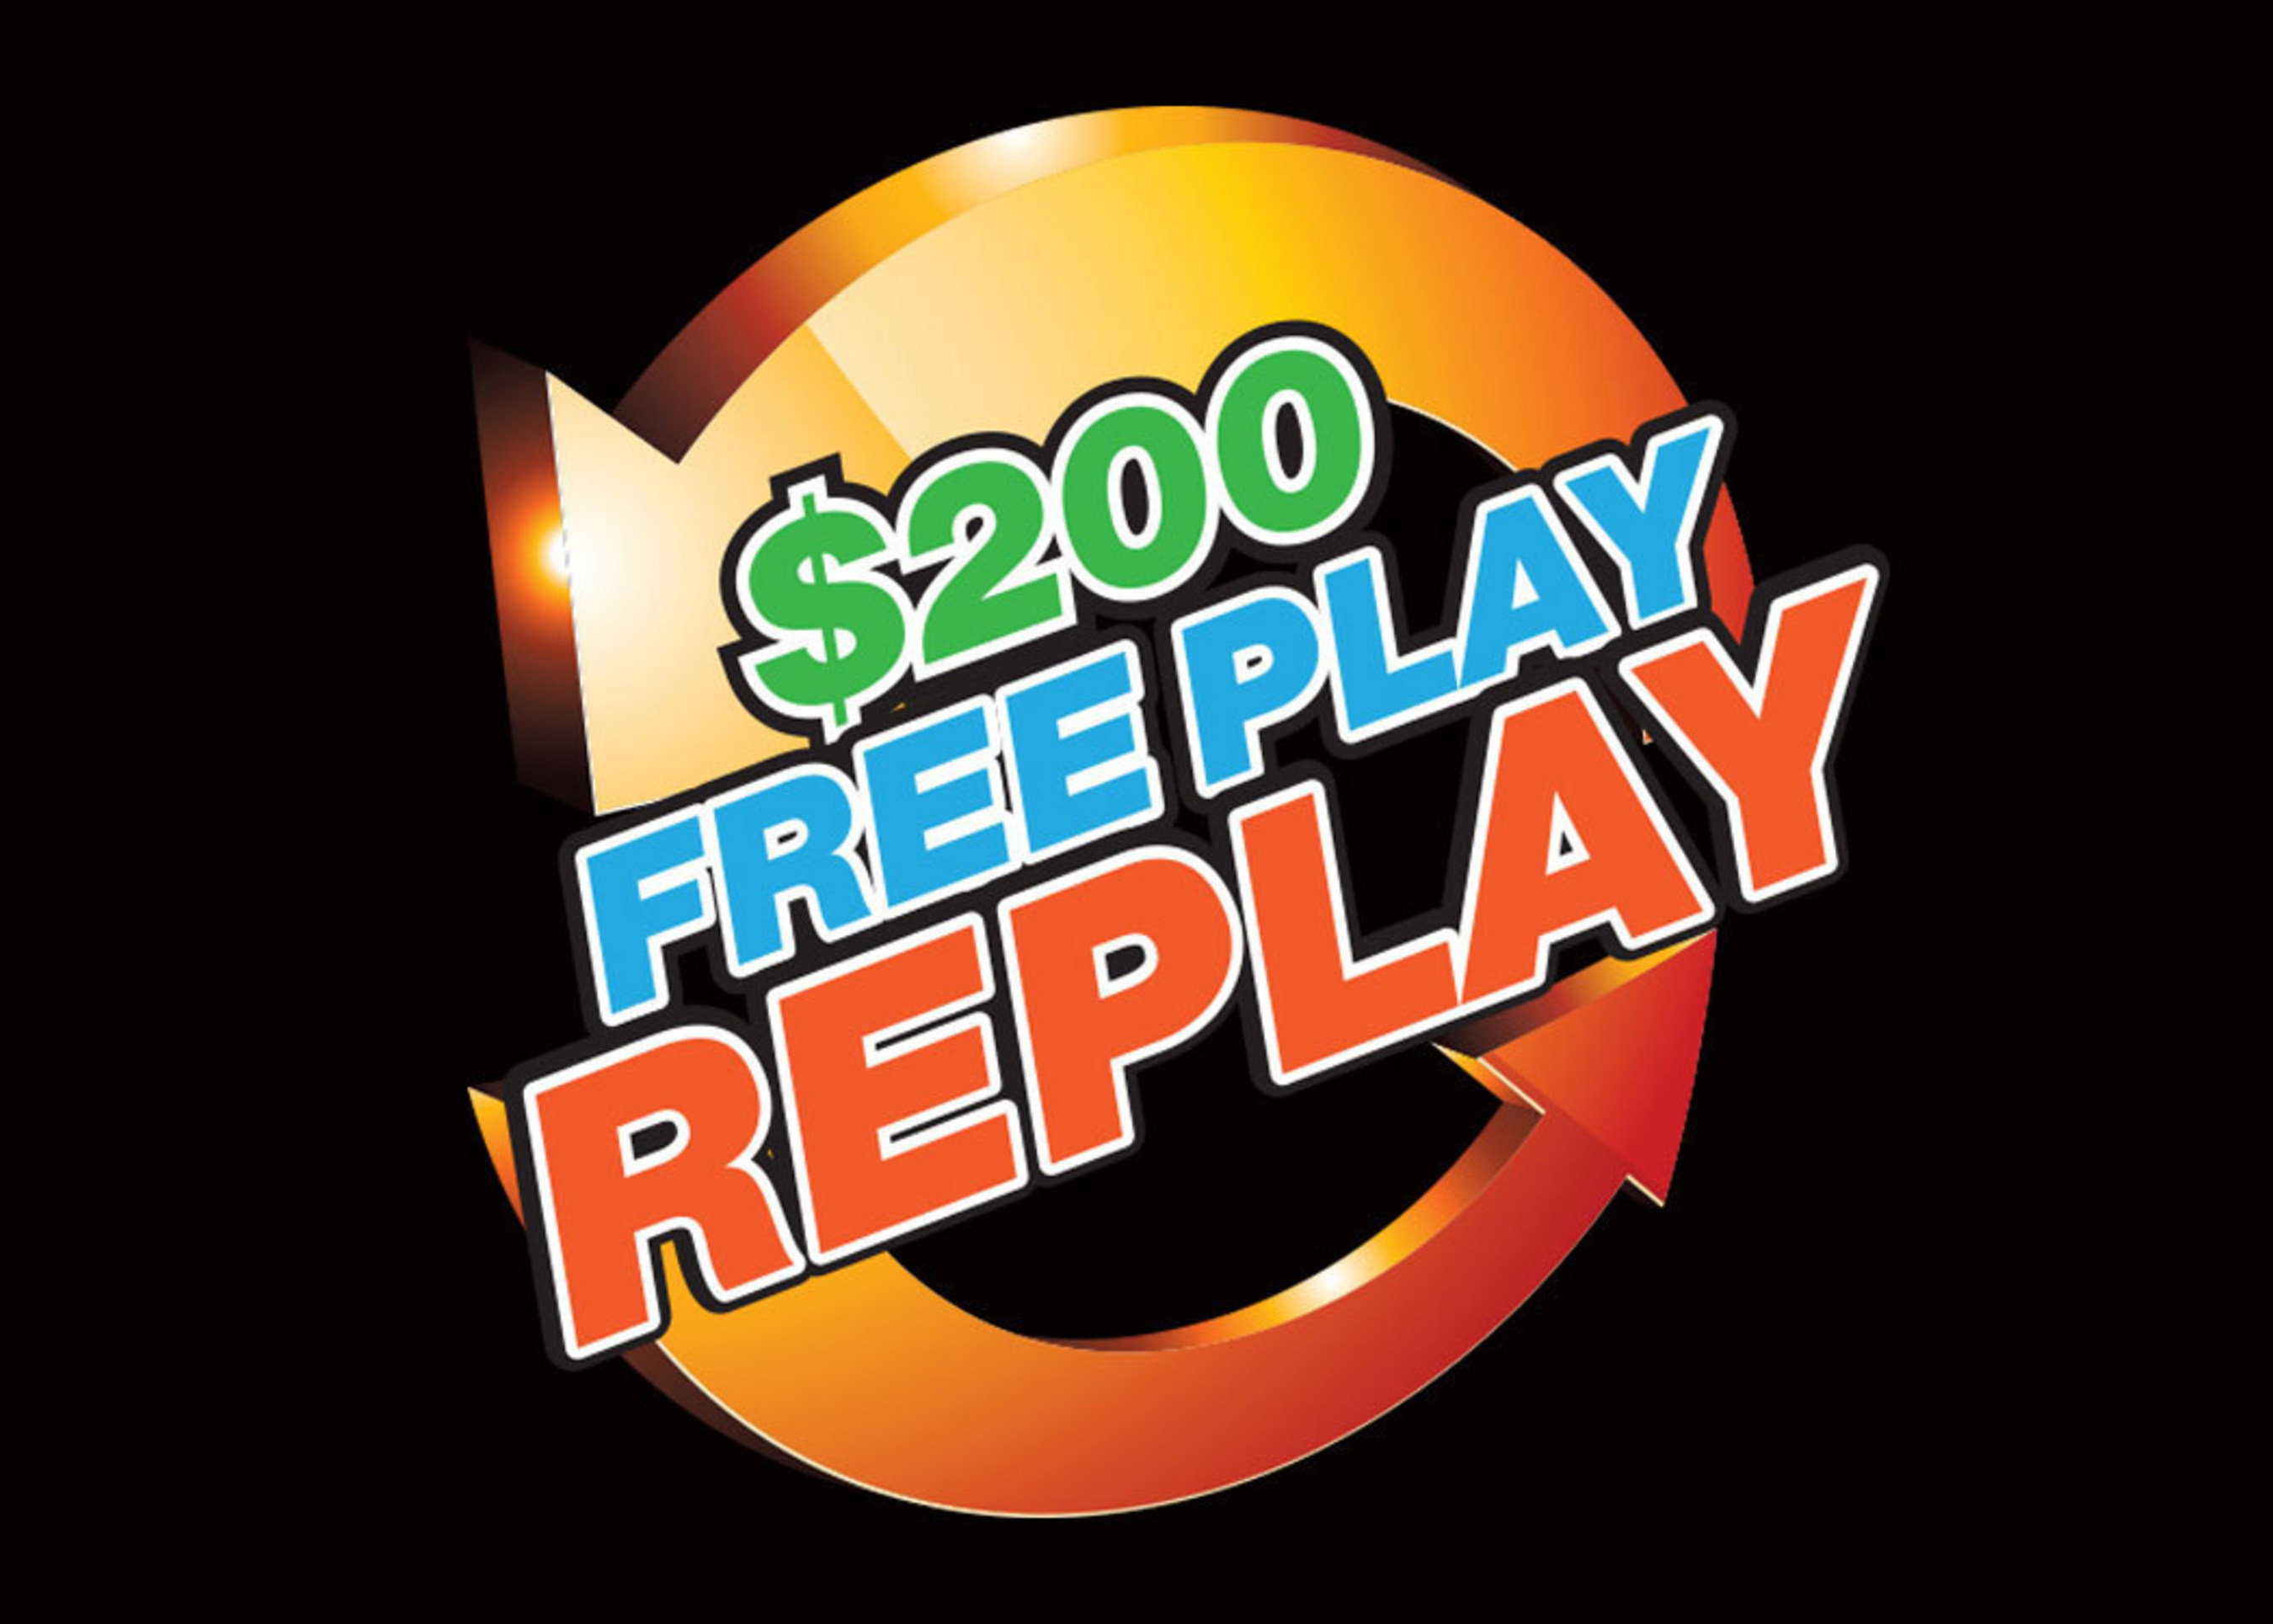 New Club Soboba members can now REPLAY up to $200 FREEPLAY!